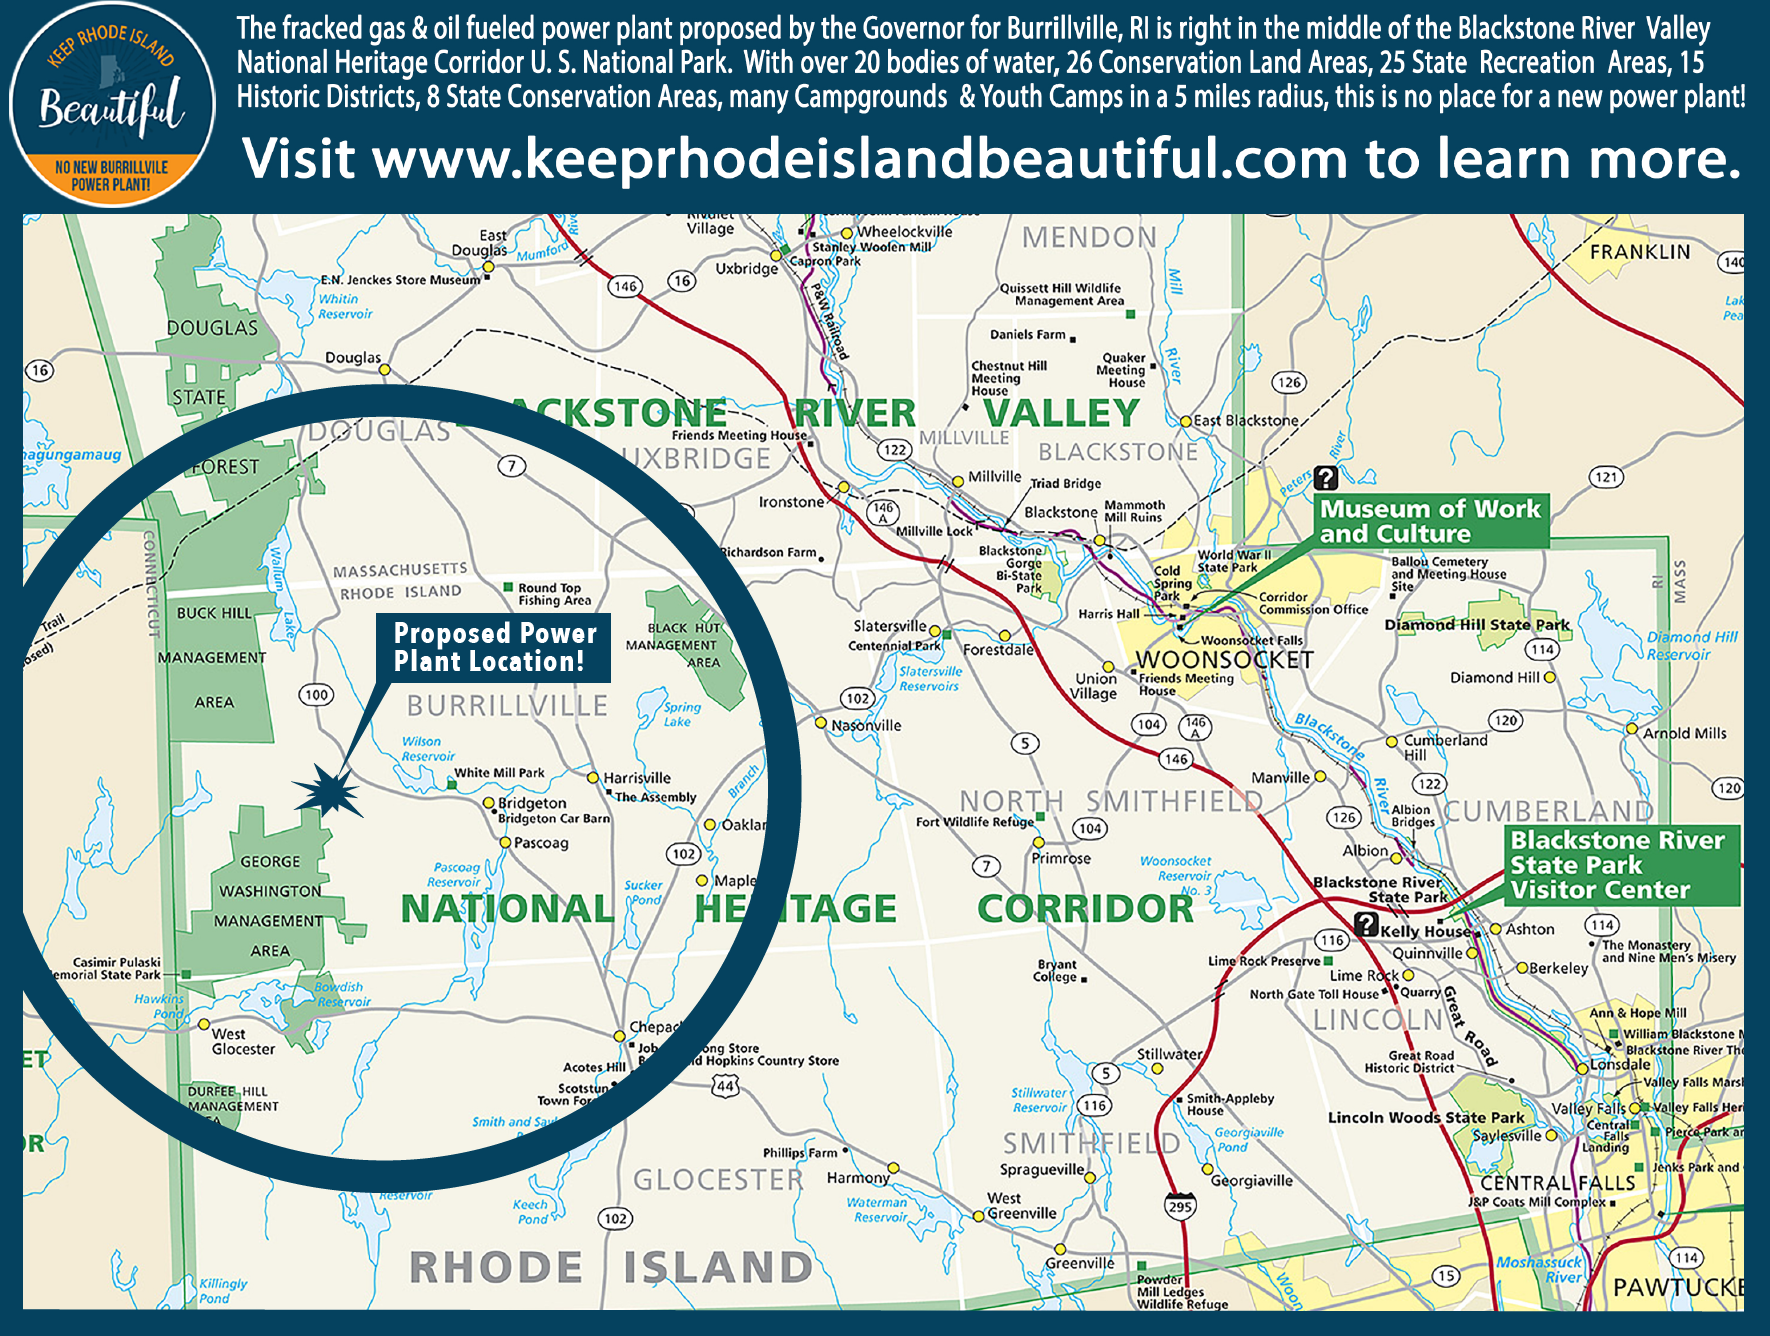 Facts & Resources – Keep Rhode Island Beautiful